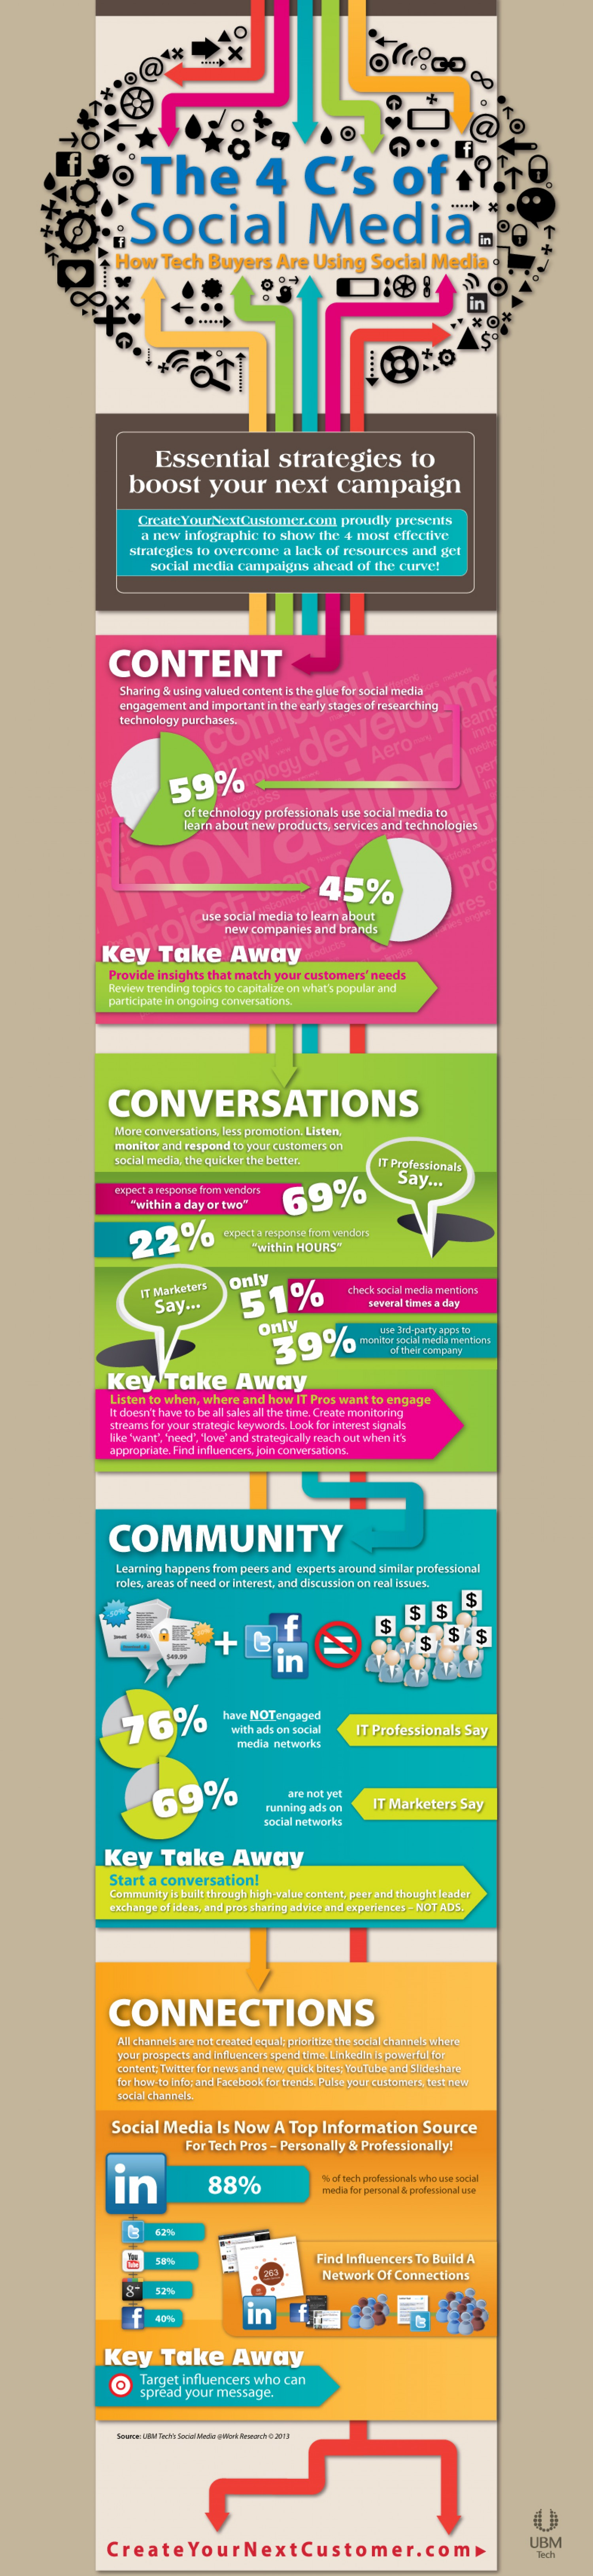 the-4-cs-of-social-media-infographic